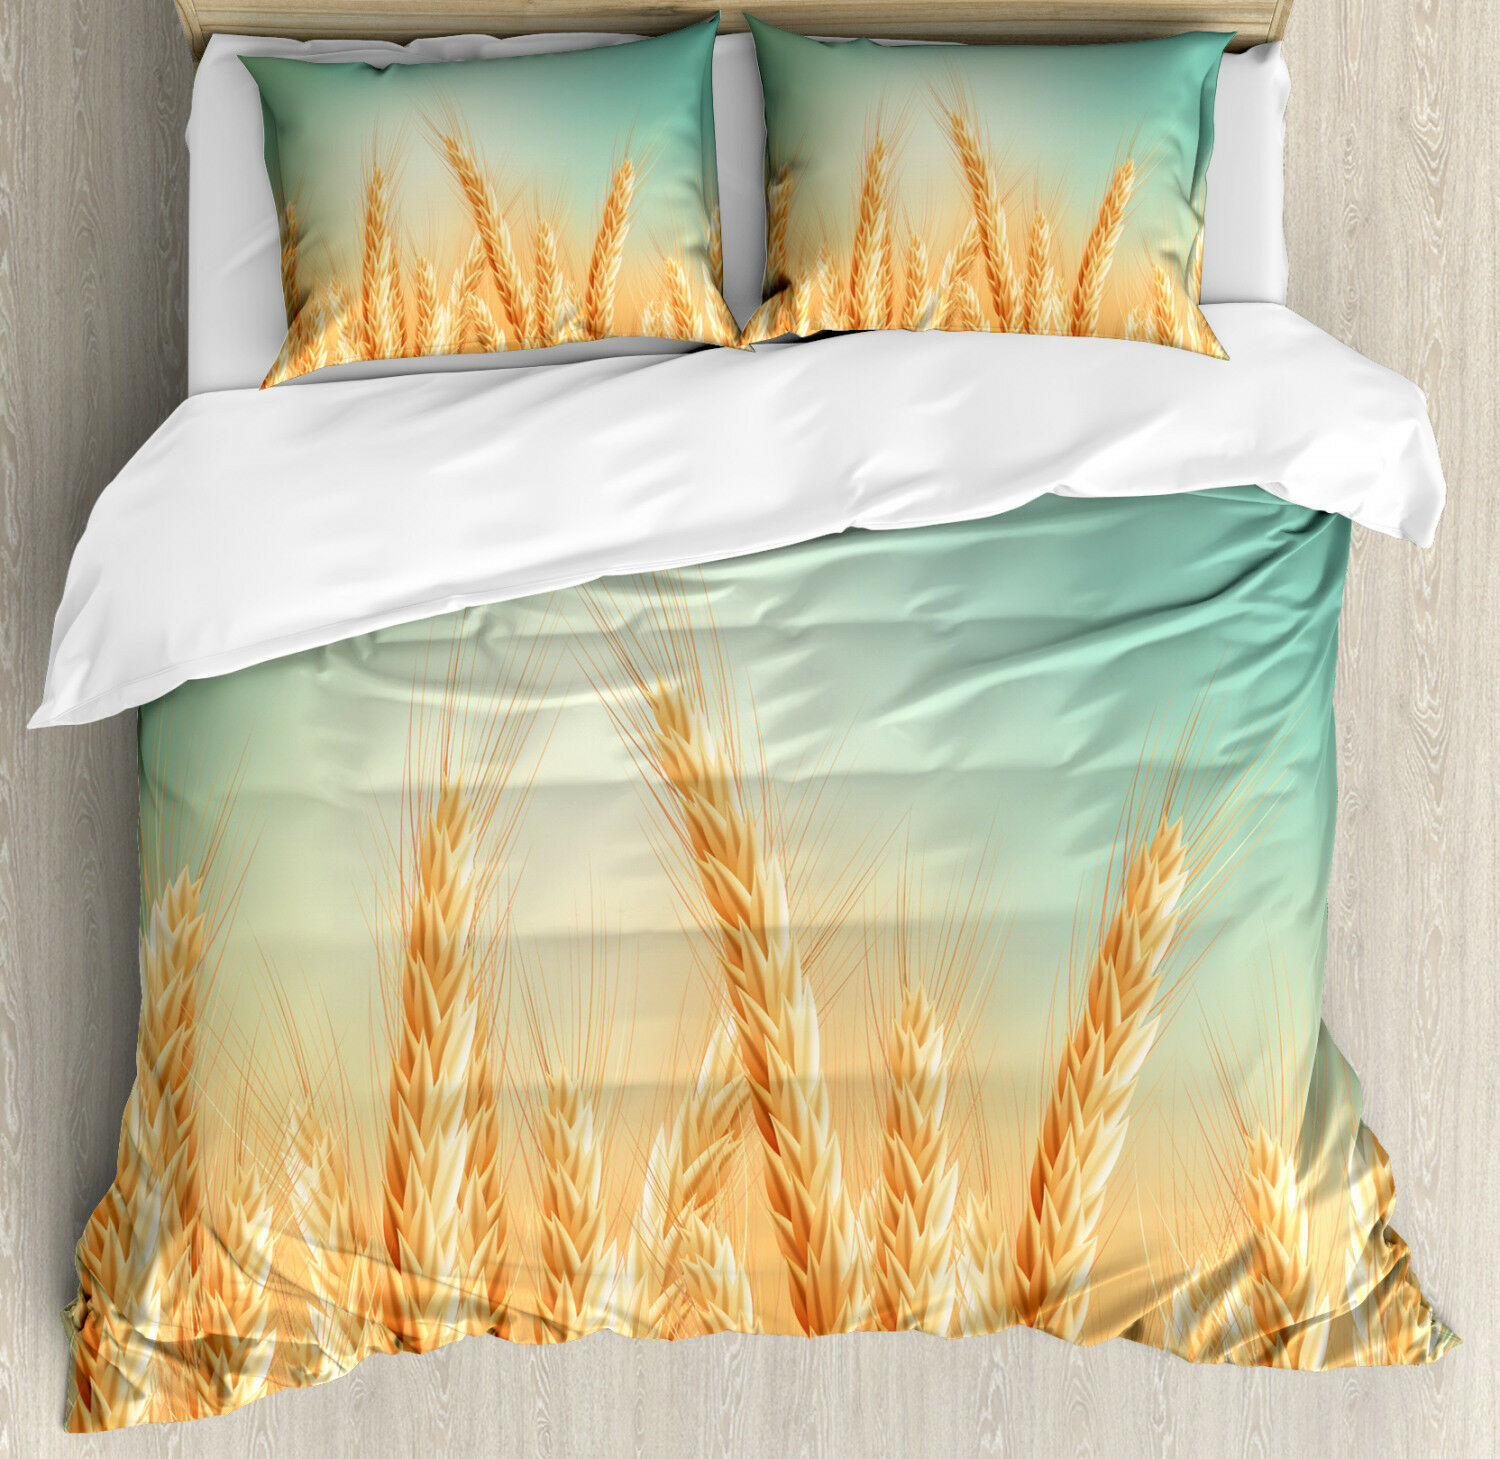 Harvest Duvet Cover Set with Pillow Shams Wheat Field blueeee Sky Print